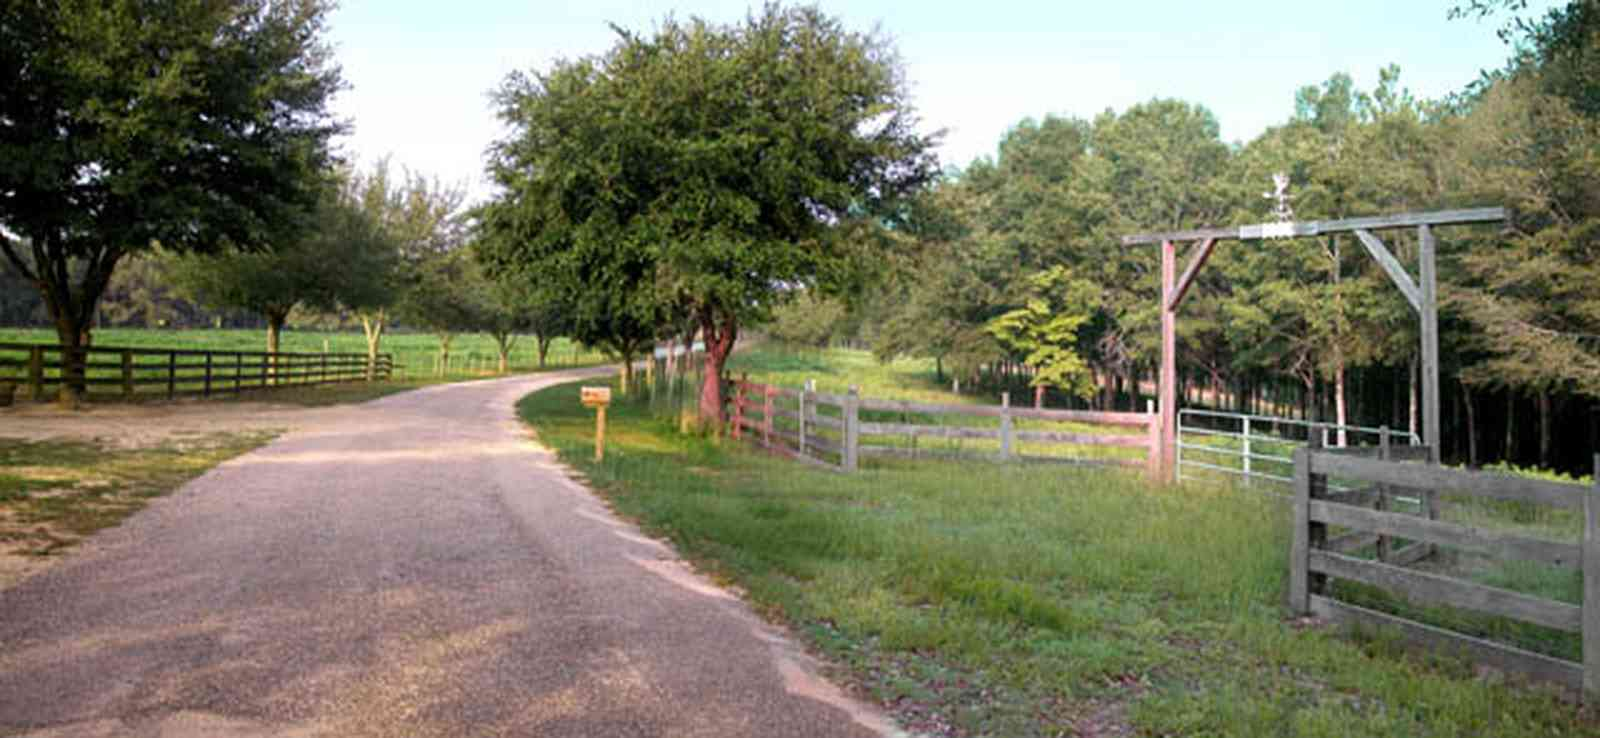 Allentown:-Hopewell-Road_07.jpg:  county road, winding road, spanish moss, narrow winding road, oak tree, pasture land, farm, farmland